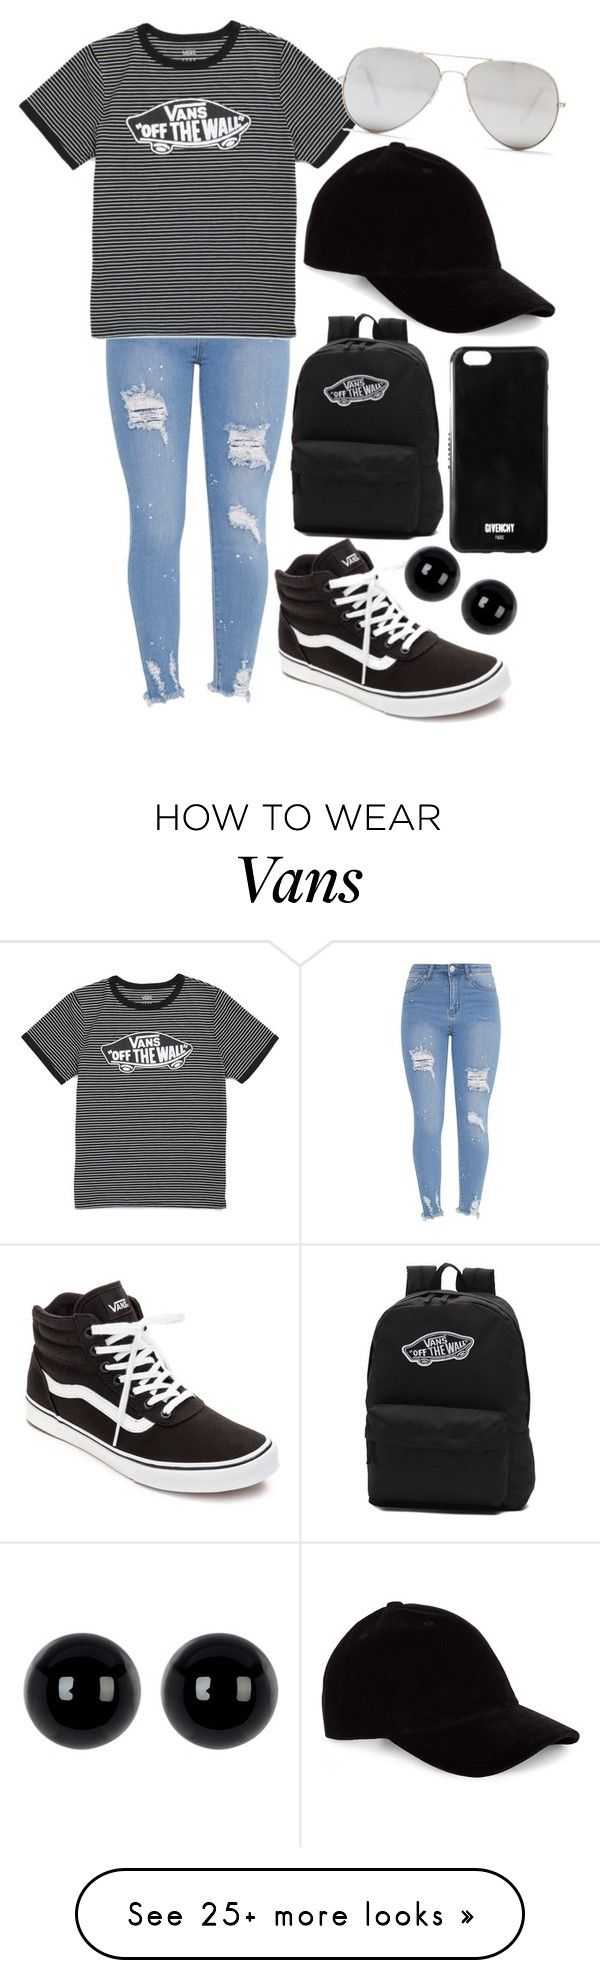 """Untitled #978"" by hayyhayc on Polyvore featuring Vans, Candela, Le Amonie, Givenchy and Sunny Rebel"